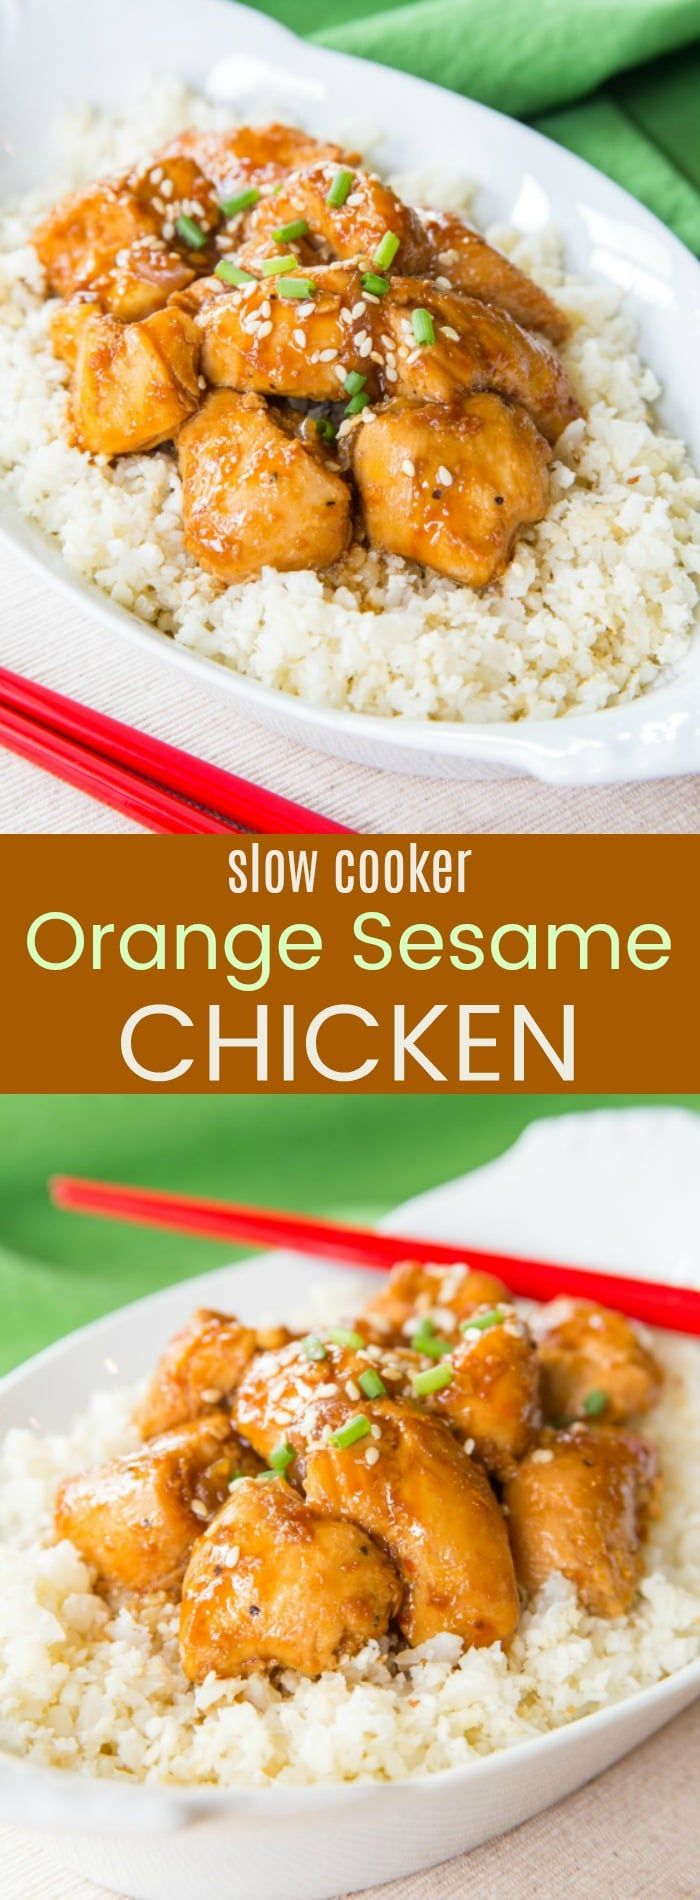 Slow Cooker Orange Sesame Chicken Recipe from The Big Book of Paleo Slow Cooking